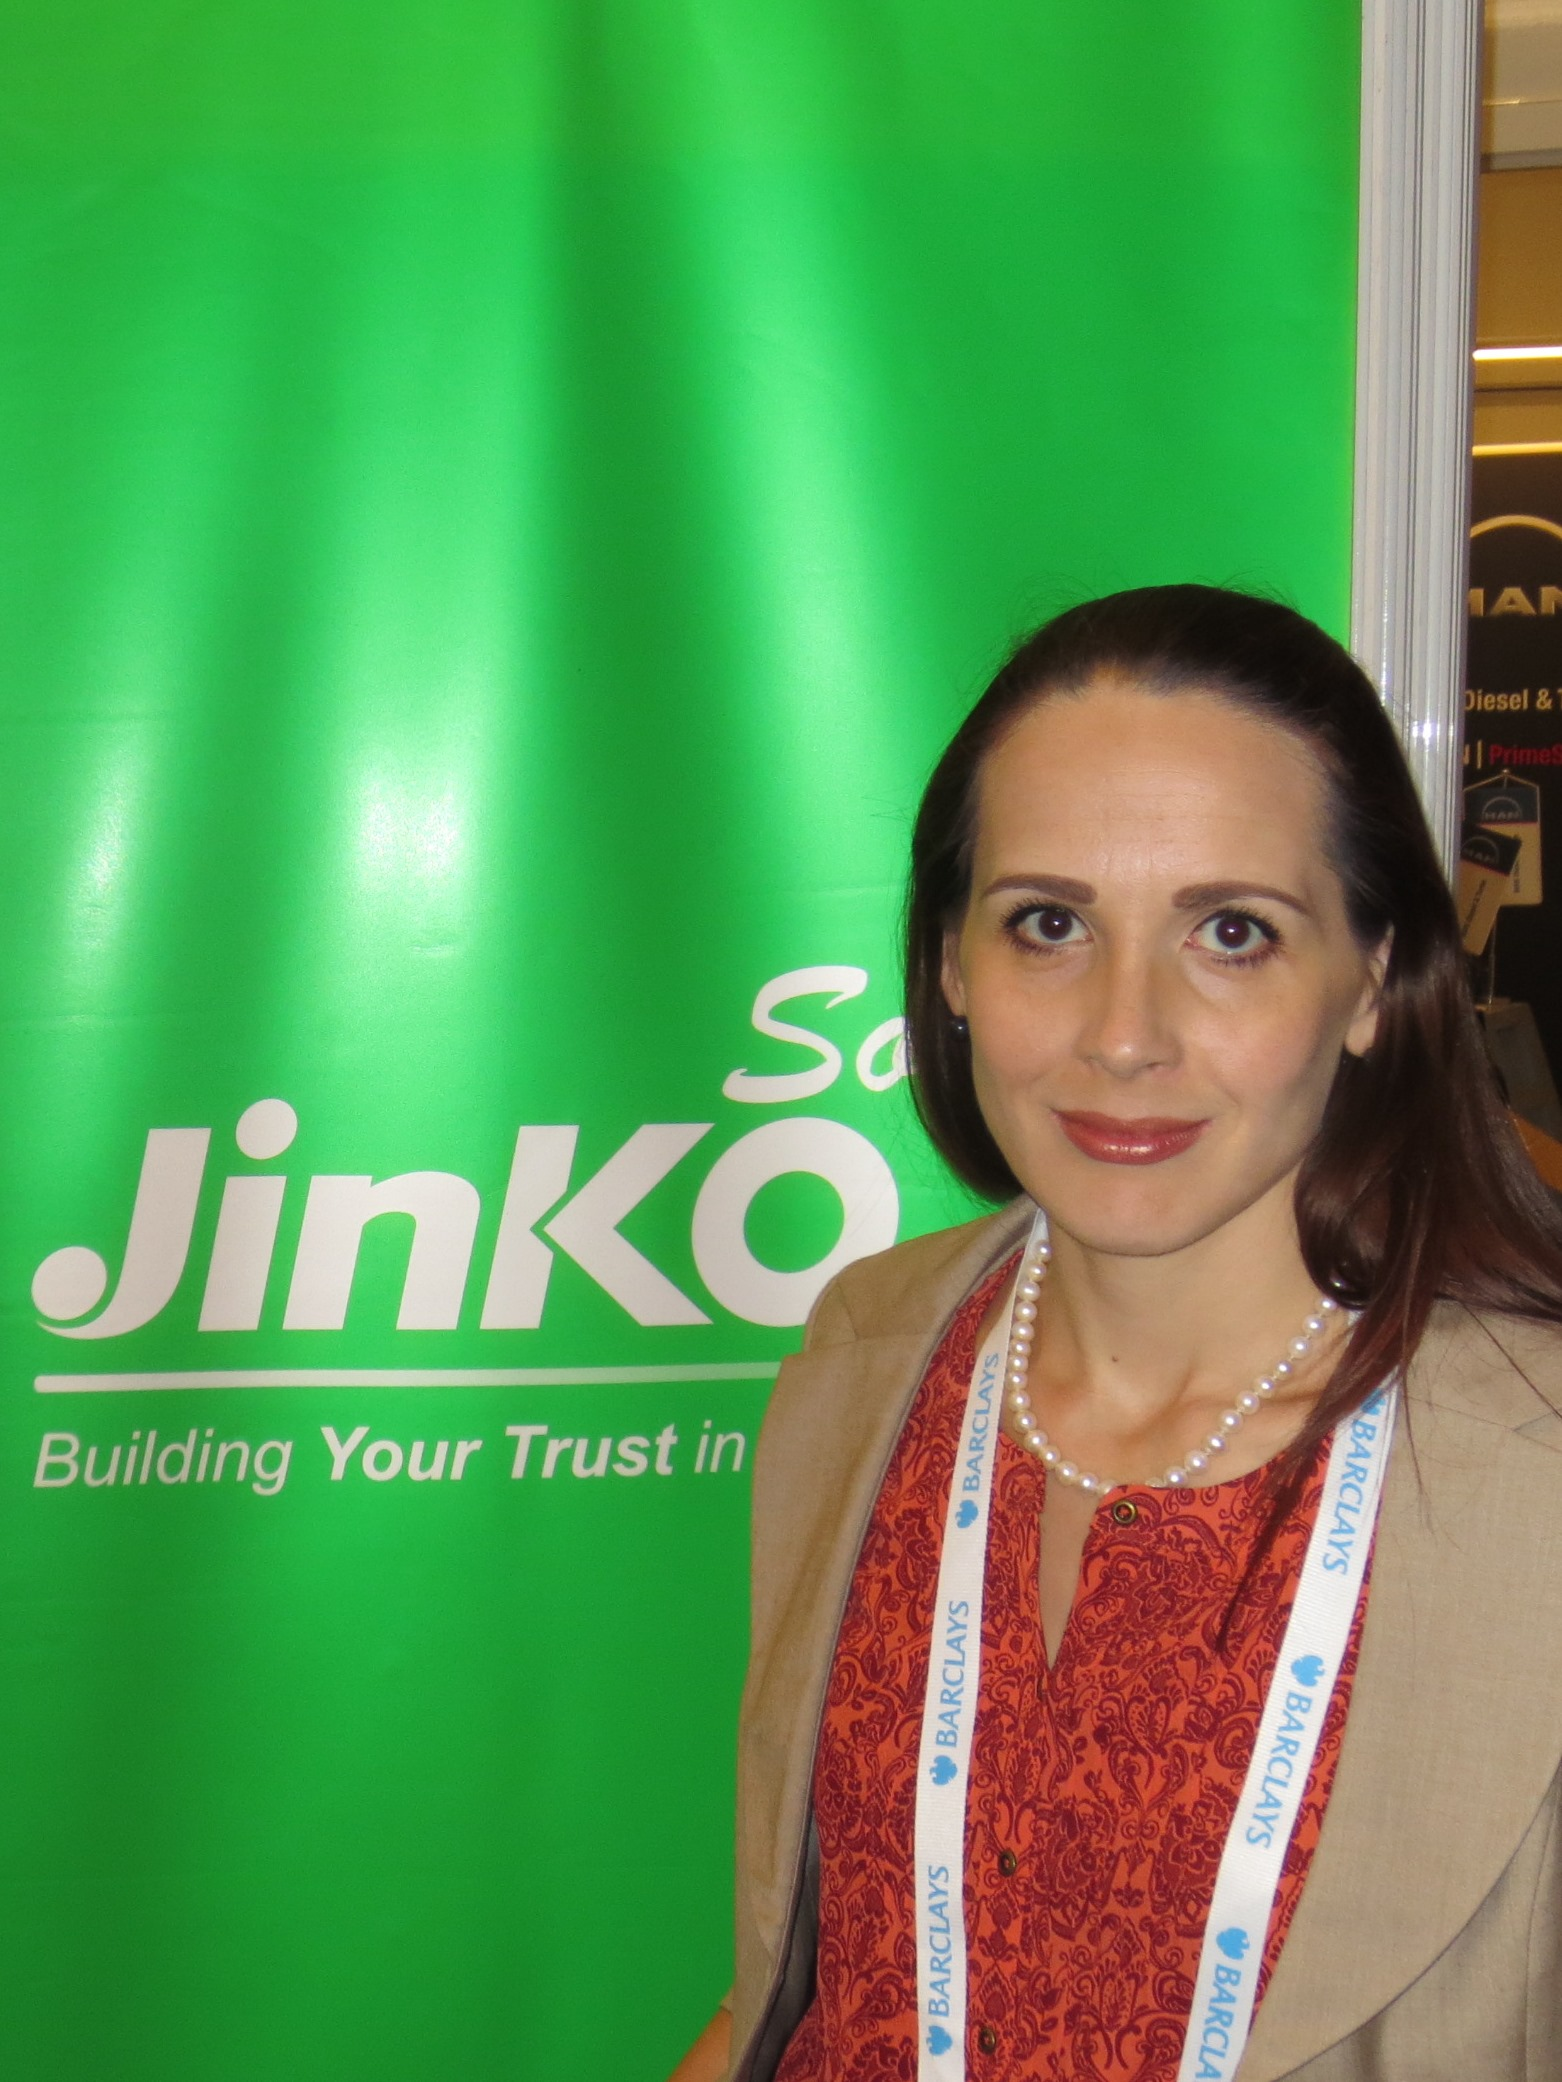 JinkoSolar: Gulnara Abdullina is the new General Manager for